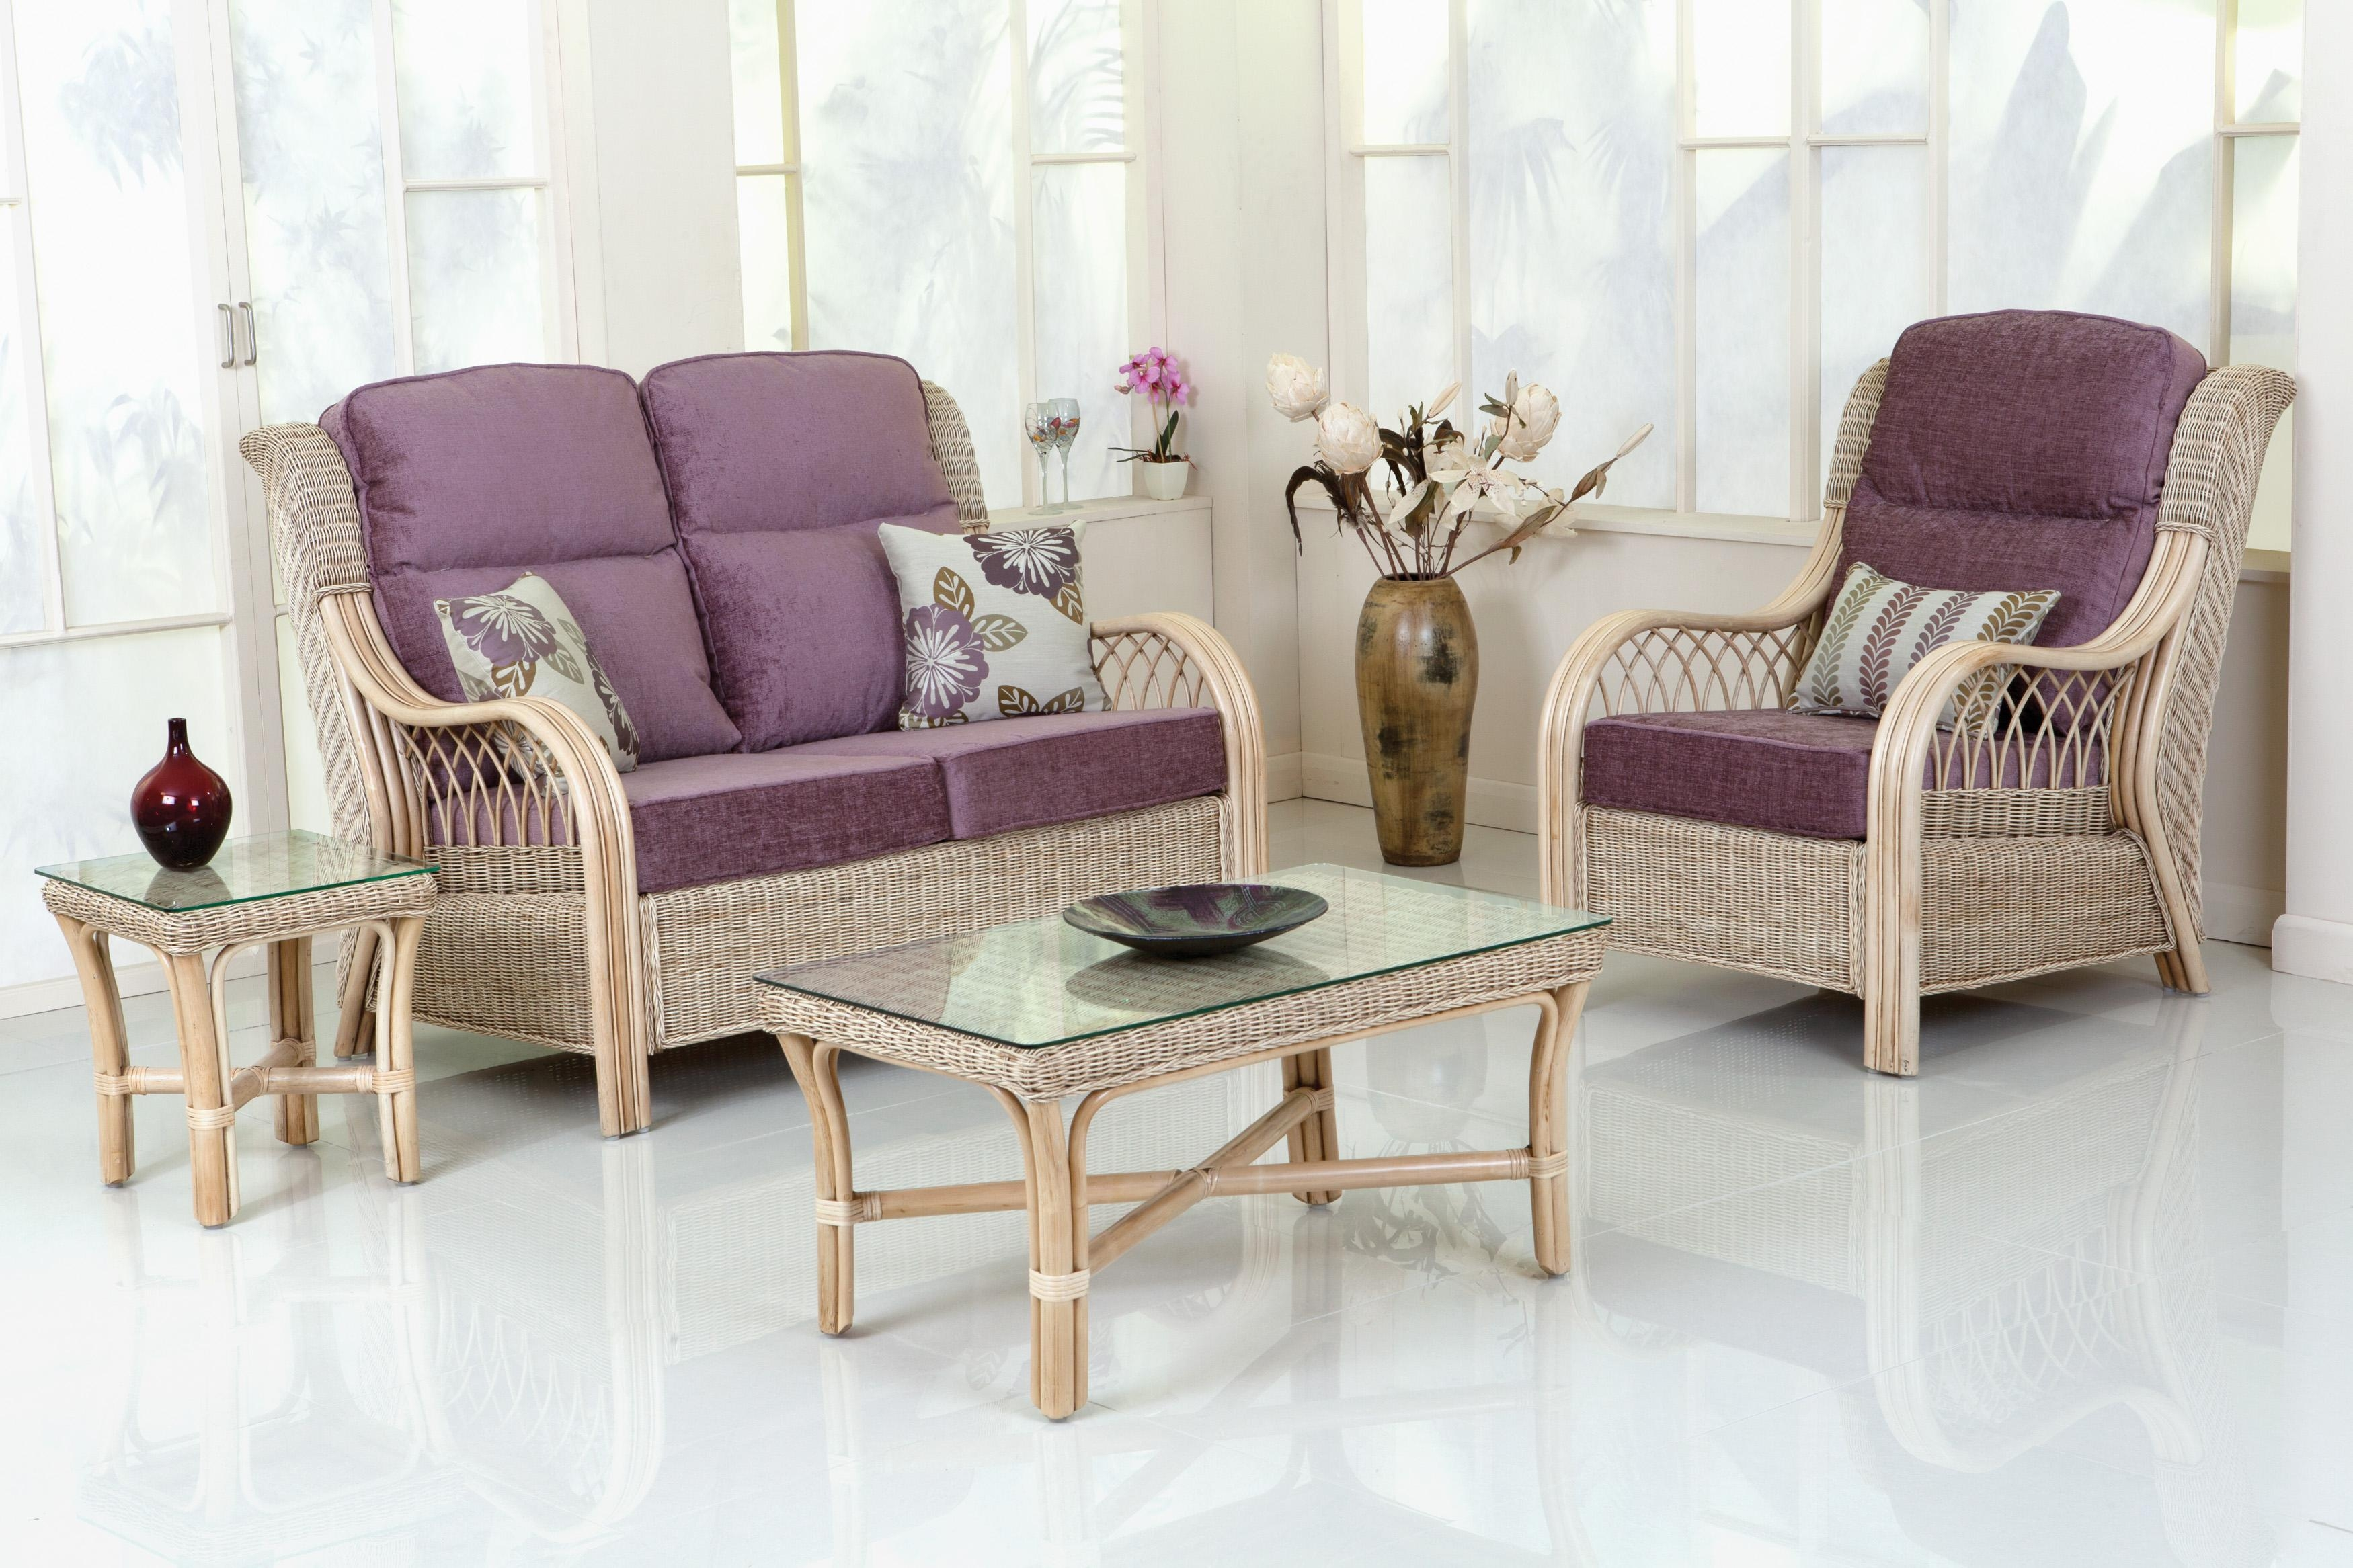 Modern Concept Cane Kitchen Chairs With Cane Furniture Sofa Set Intended For Cane Sofas (View 12 of 20)